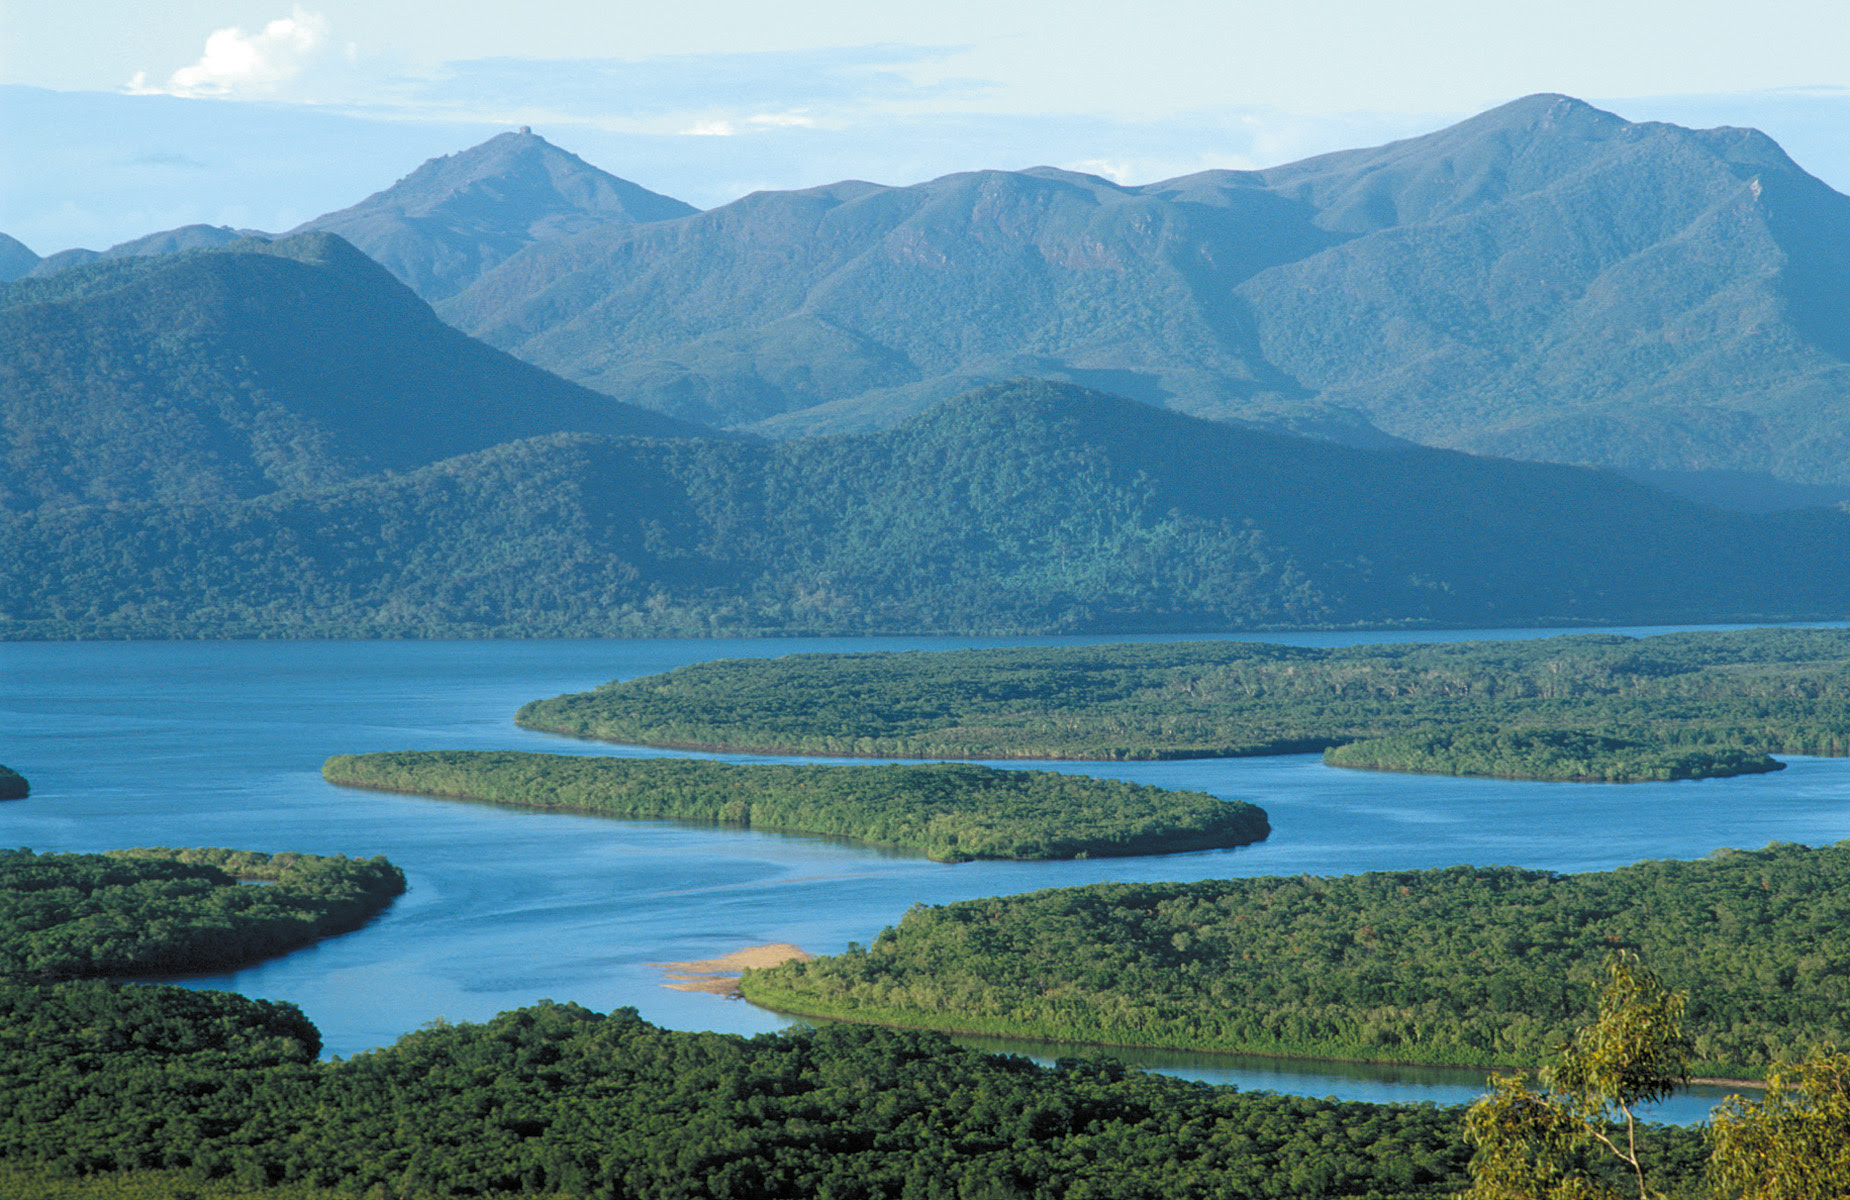 http://upload.wikimedia.org/wikipedia/commons/c/c1/CSIRO_ScienceImage_4528_Hinchinbrook_Island_channel_and_mangroves_as_seen_from_lookout_near_Cardwell_QLD.jpg